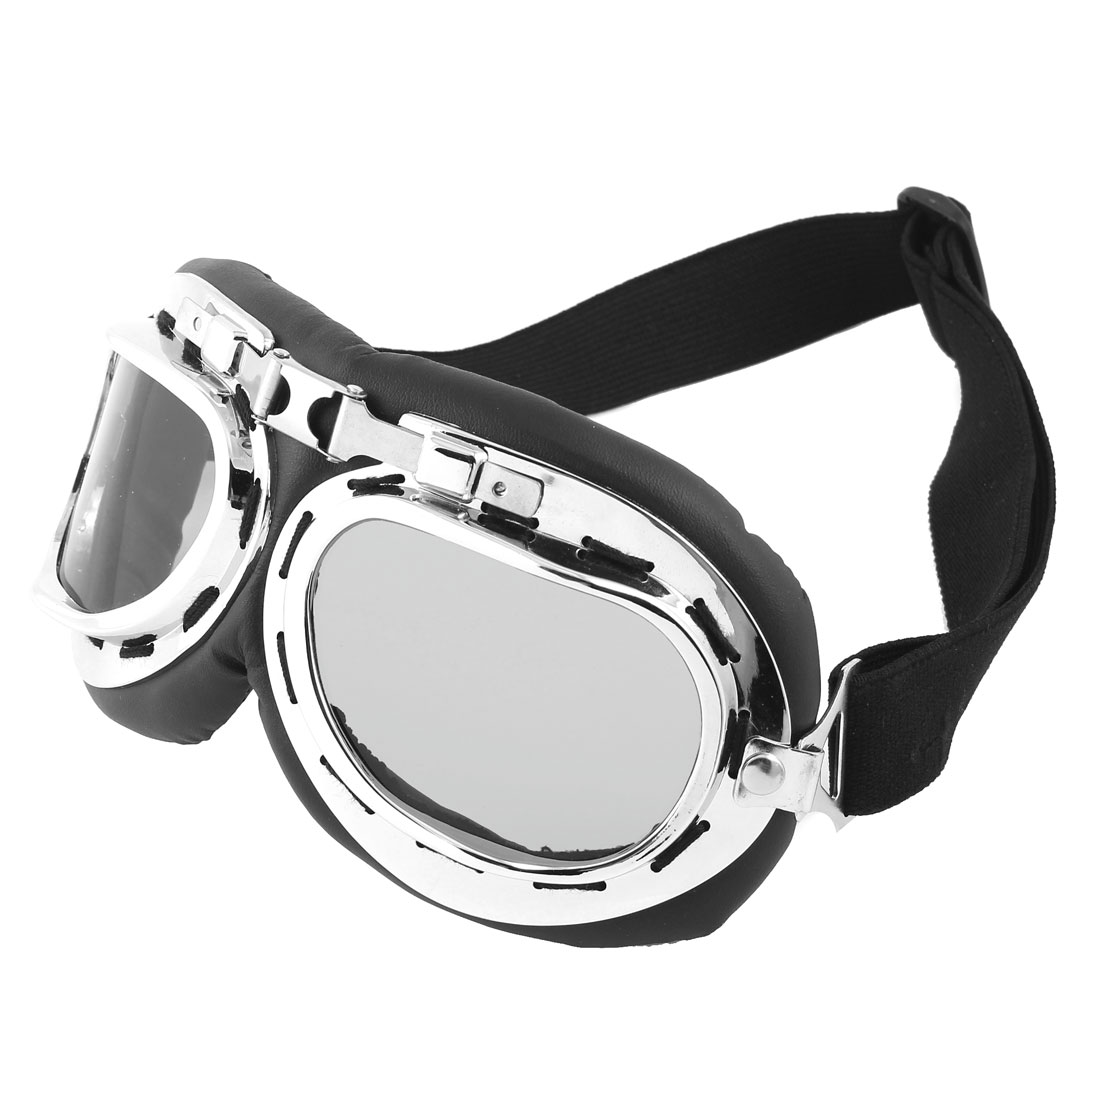 Sponge Pad Inner Ski Racing Snowboard Goggles Eyewear Protective Glasses by Unique-Bargains